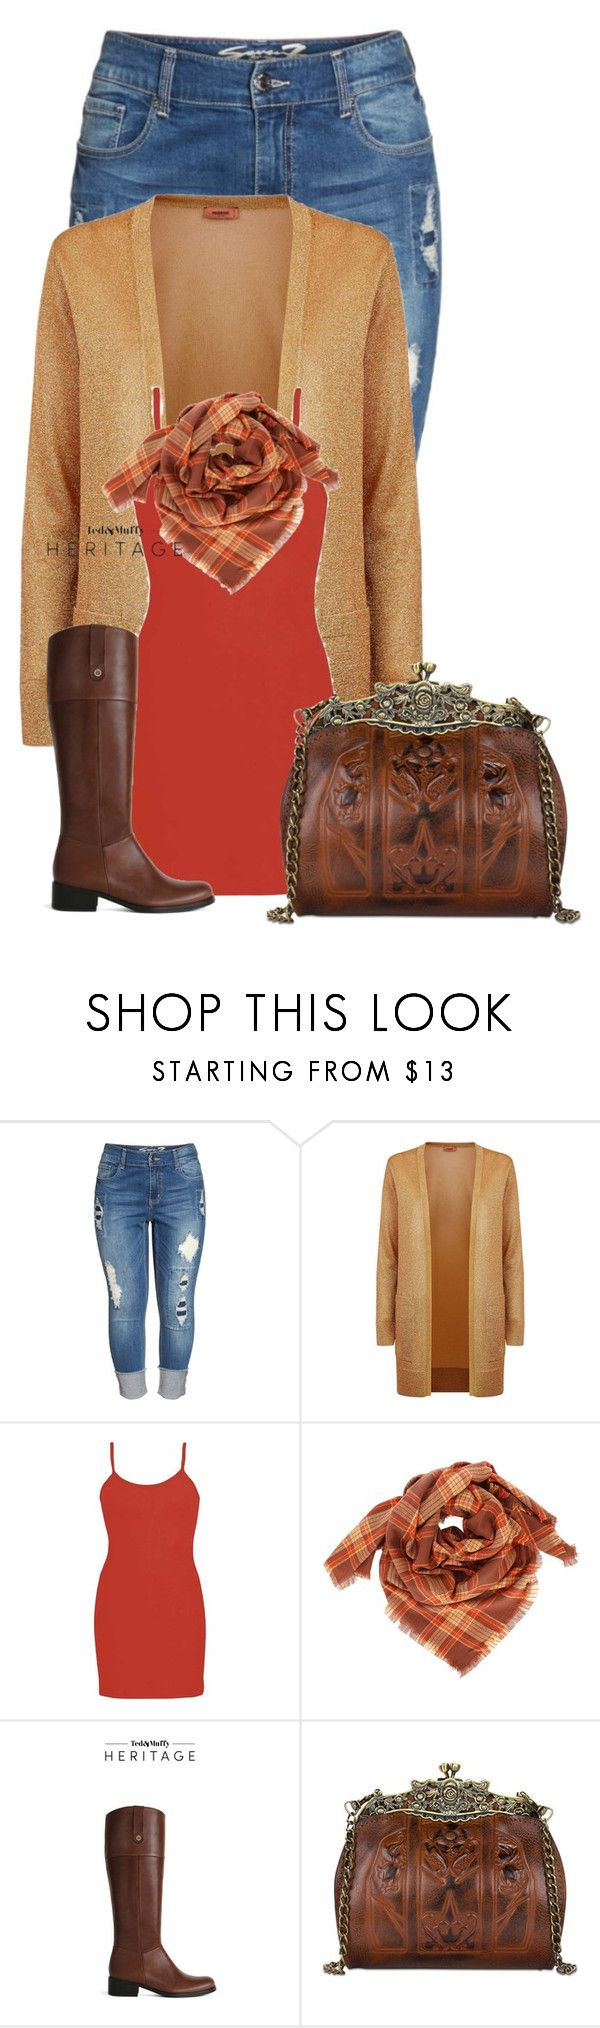 """""""Untitled #24018"""" by nanette-253 ❤ liked on Polyvore featuring Seven7 Jeans, Missoni, BKE core and Patricia Nash"""